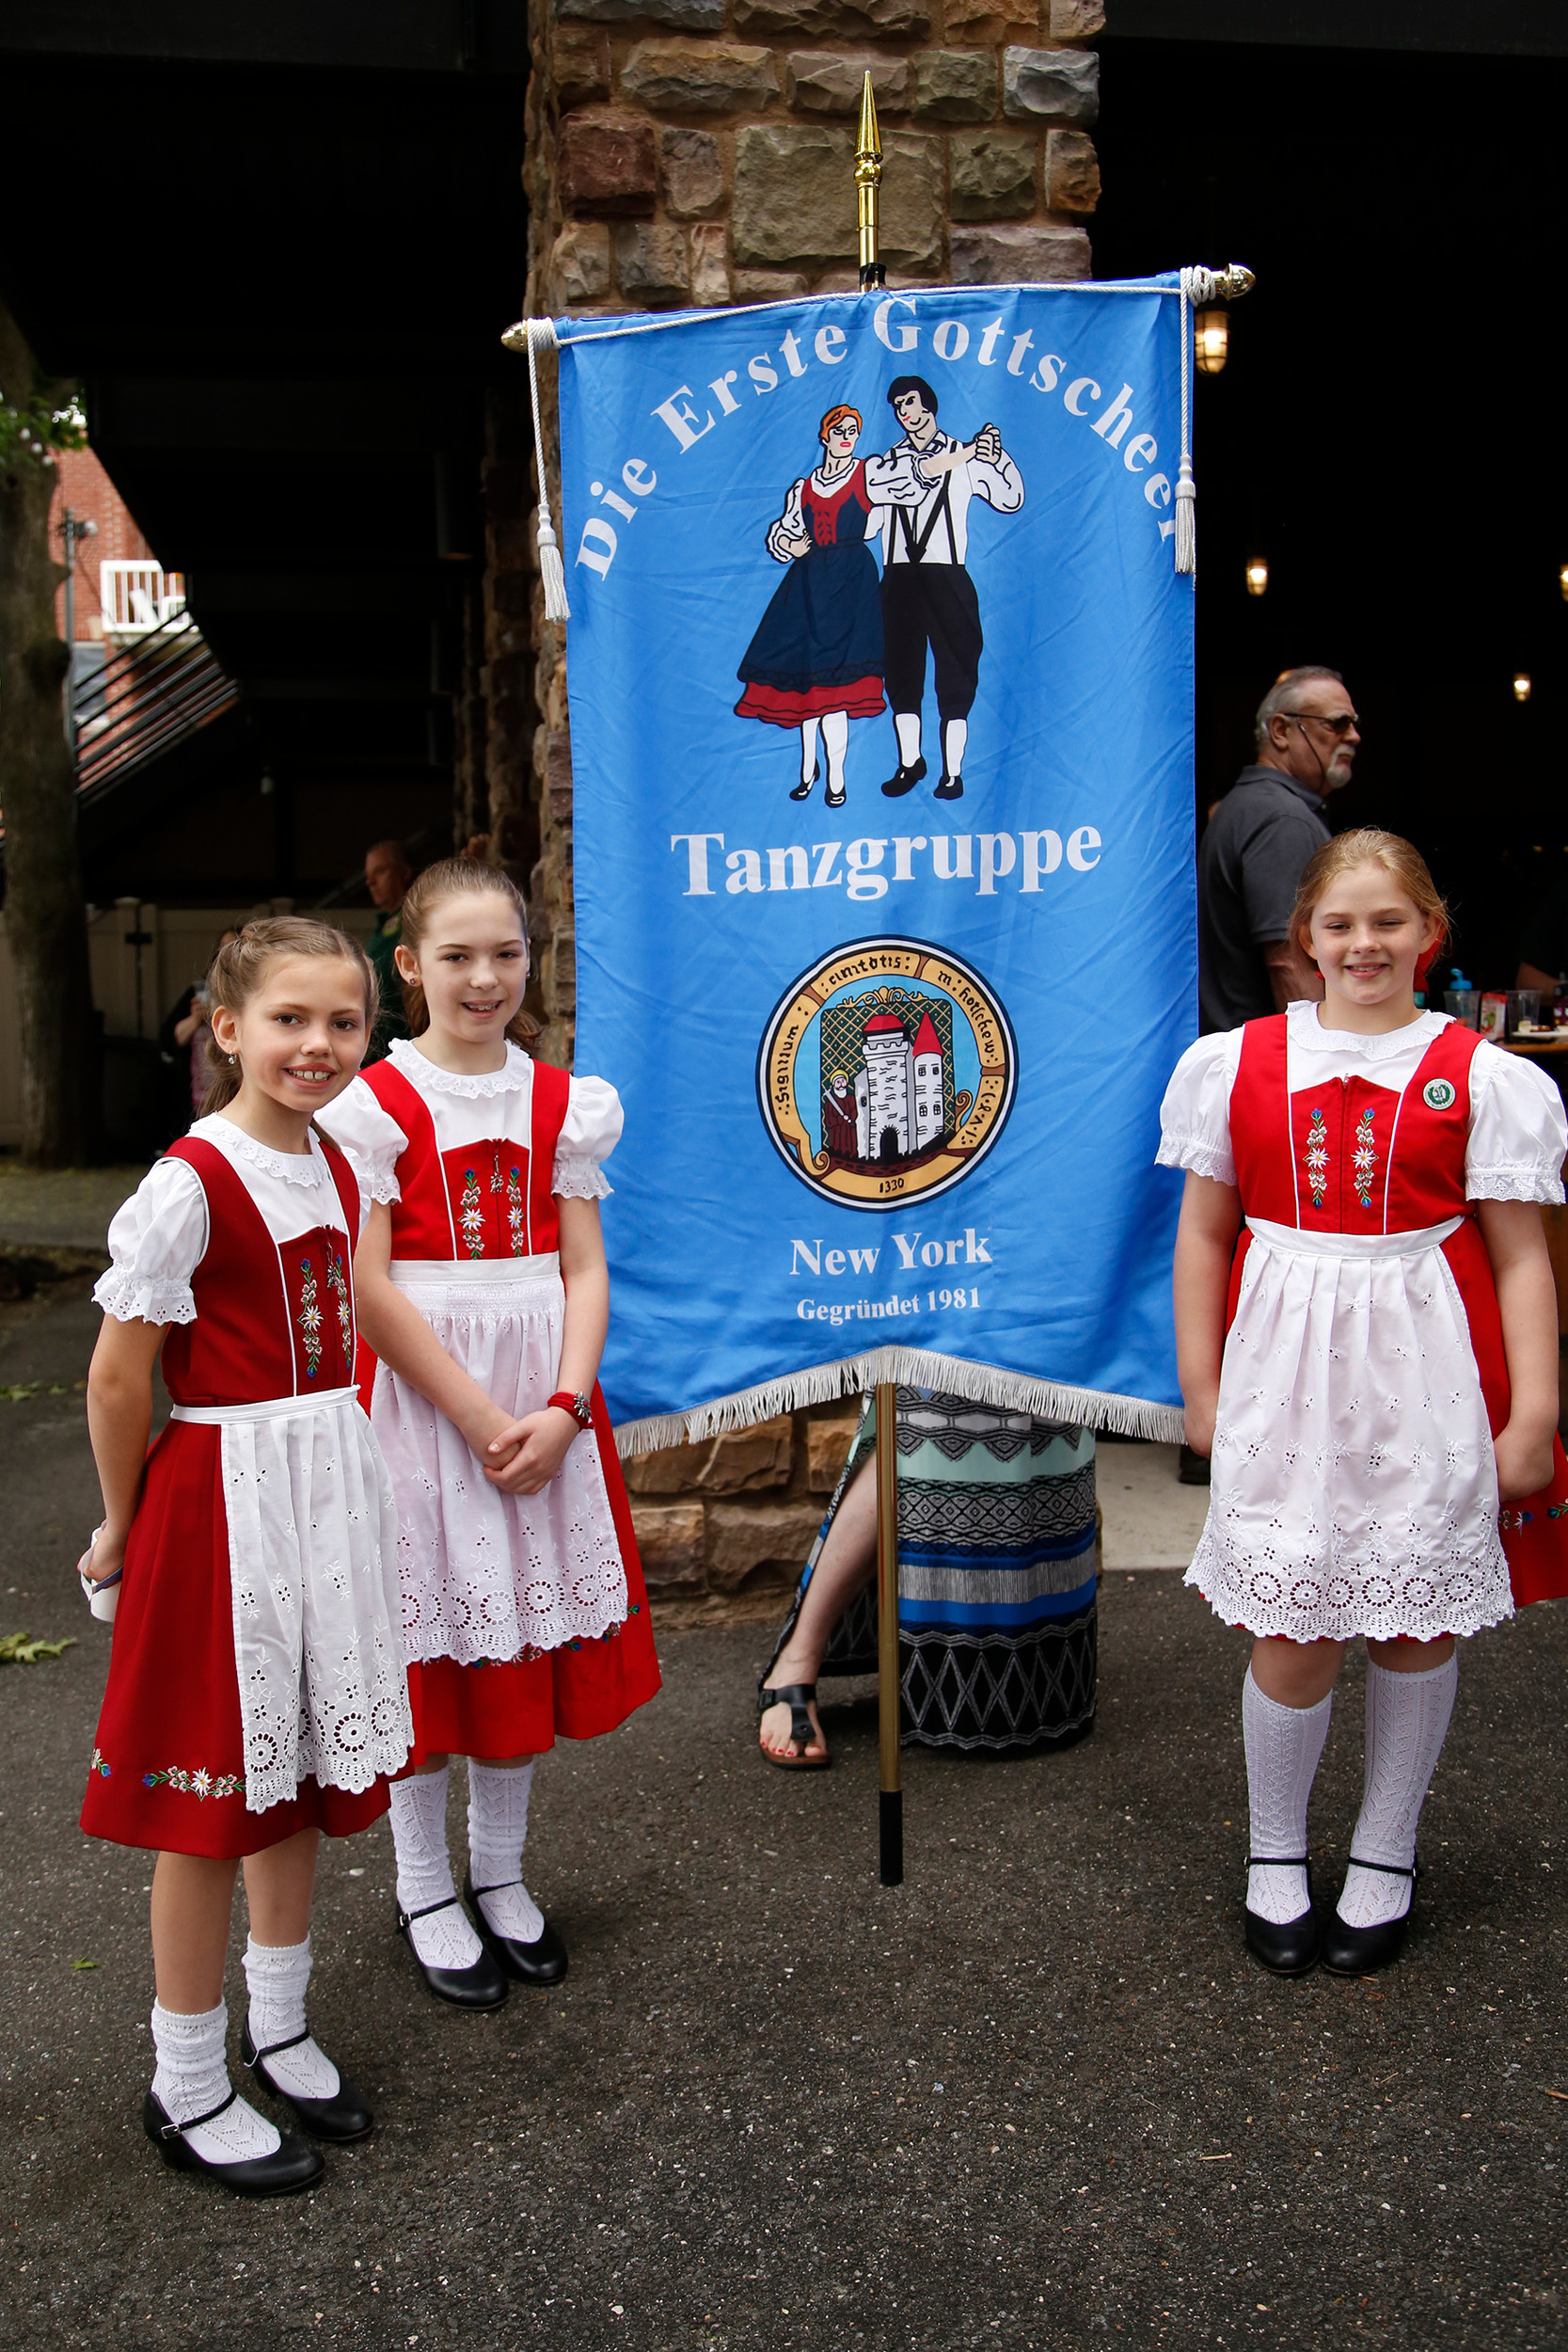 Young dancers Monika Schemitsch, Anya Barritsch and Katie Karacsony took part in the cultural festivities.